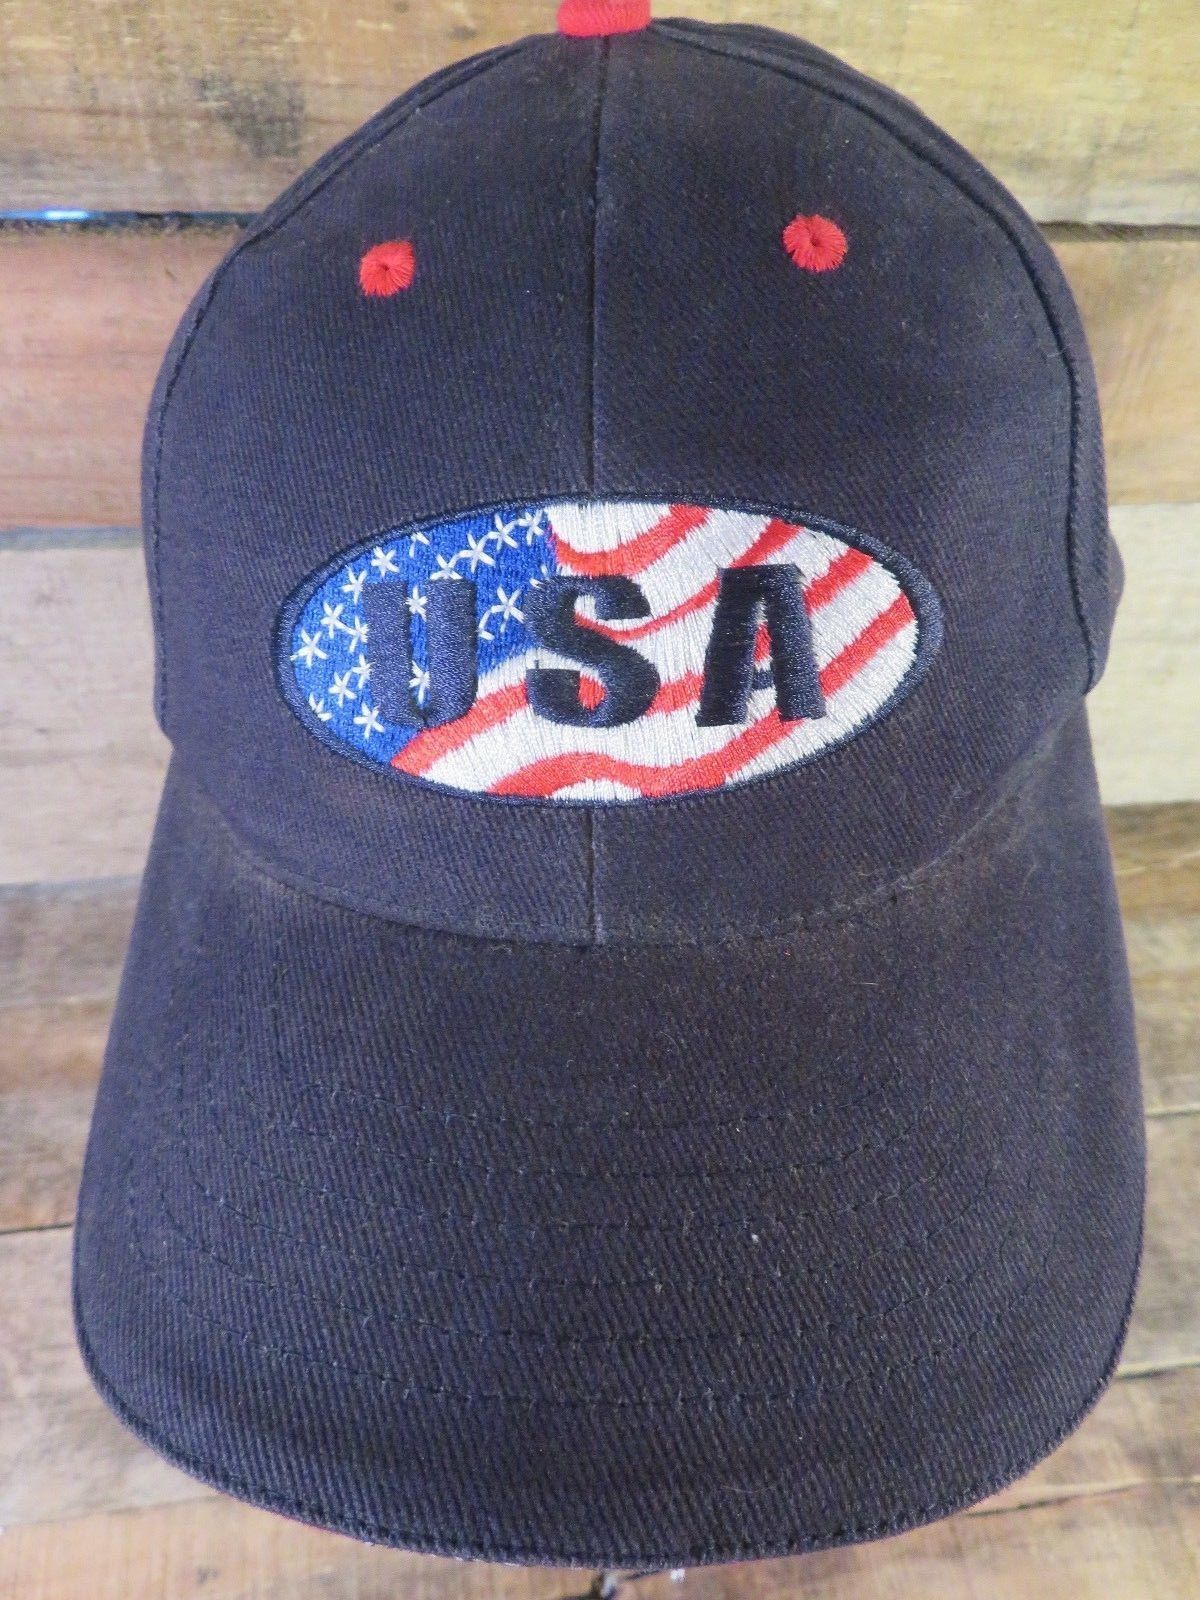 Primary image for USA United States of America Red White Blue Adjustable Strapback Adult Hat Cap